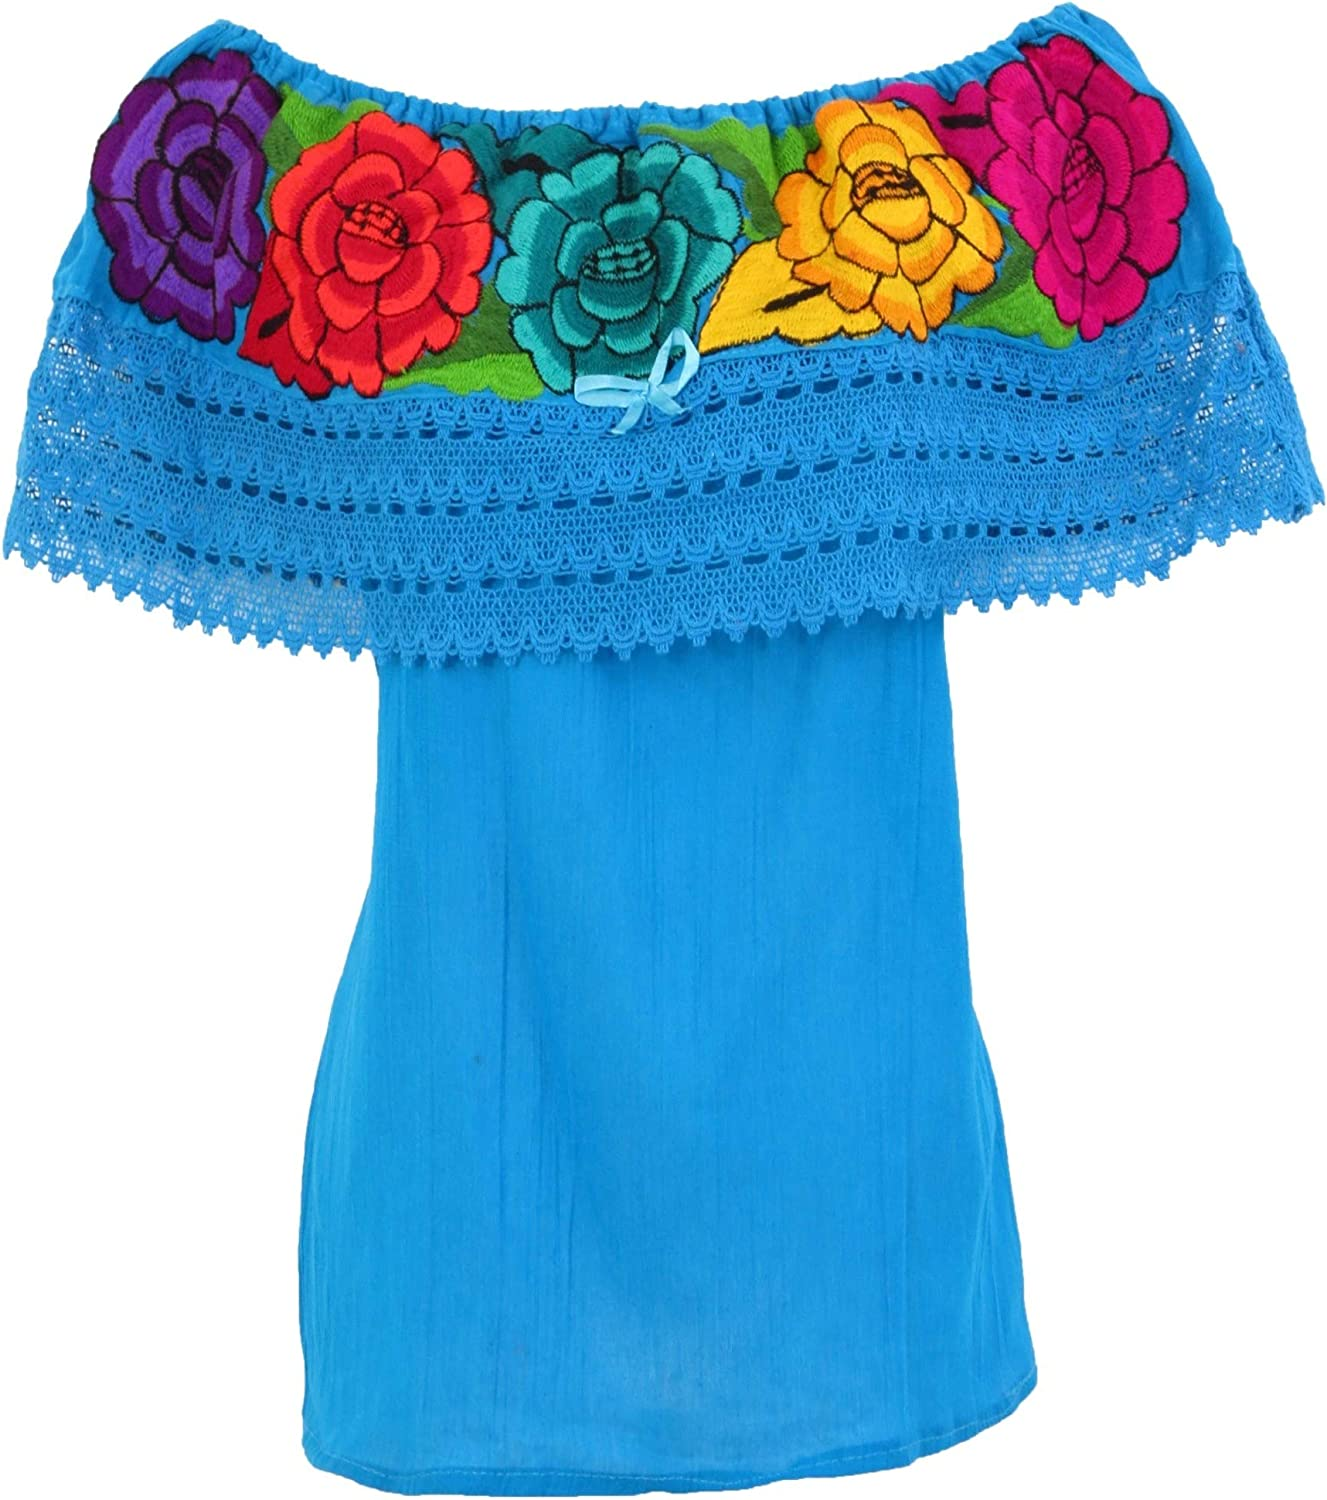 Embroidered Mexican Blouse Floral Embroidered Blouse